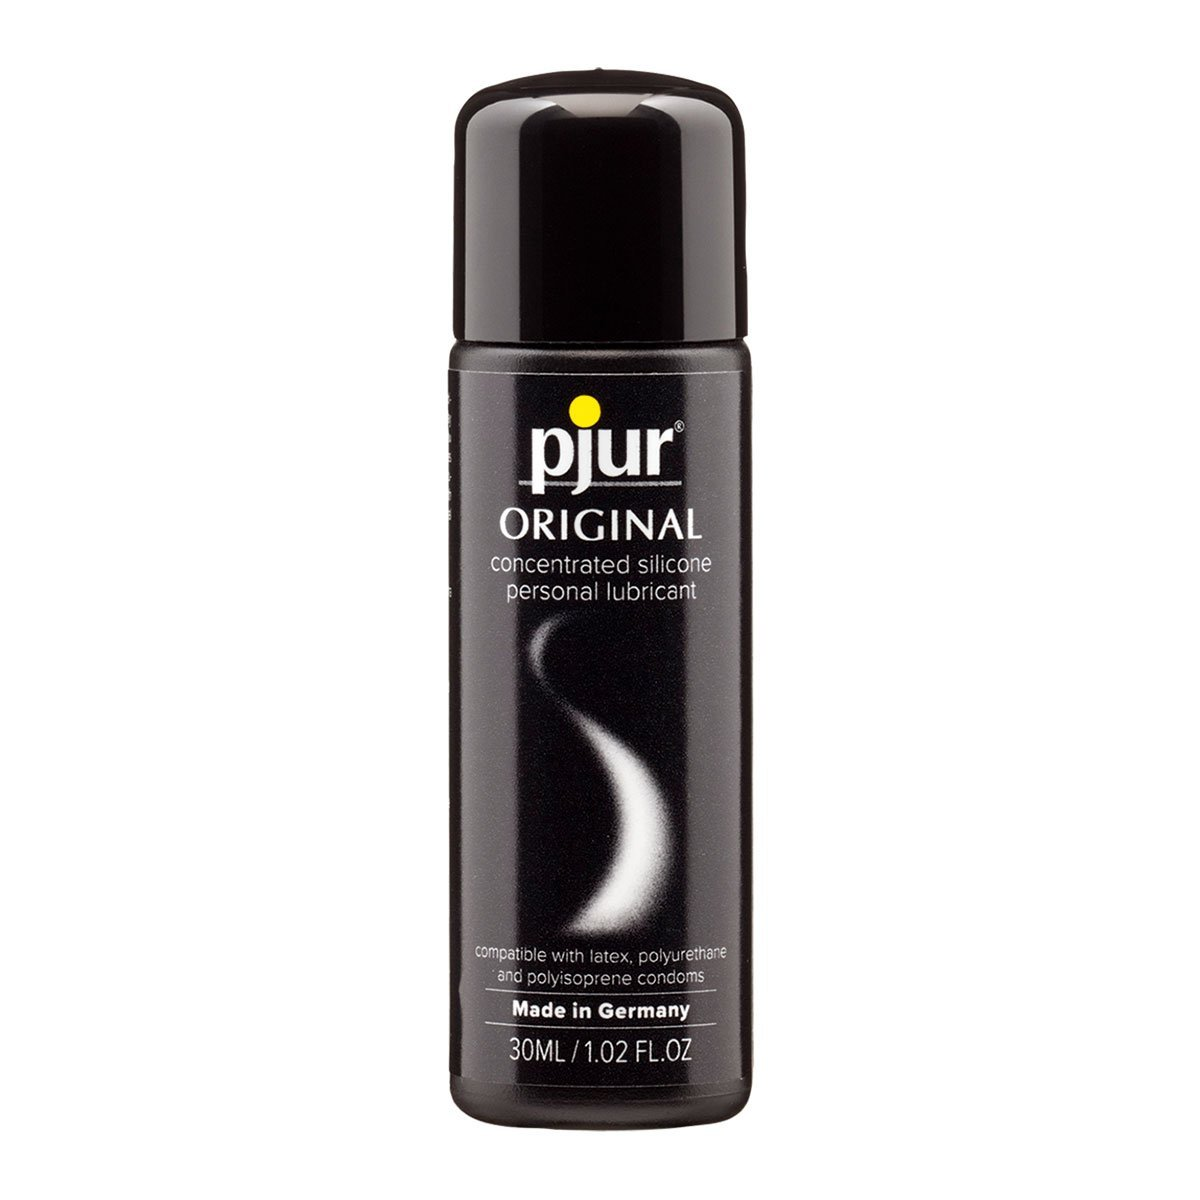 Pjur Original Lubricant 30ml - Beyond Delights